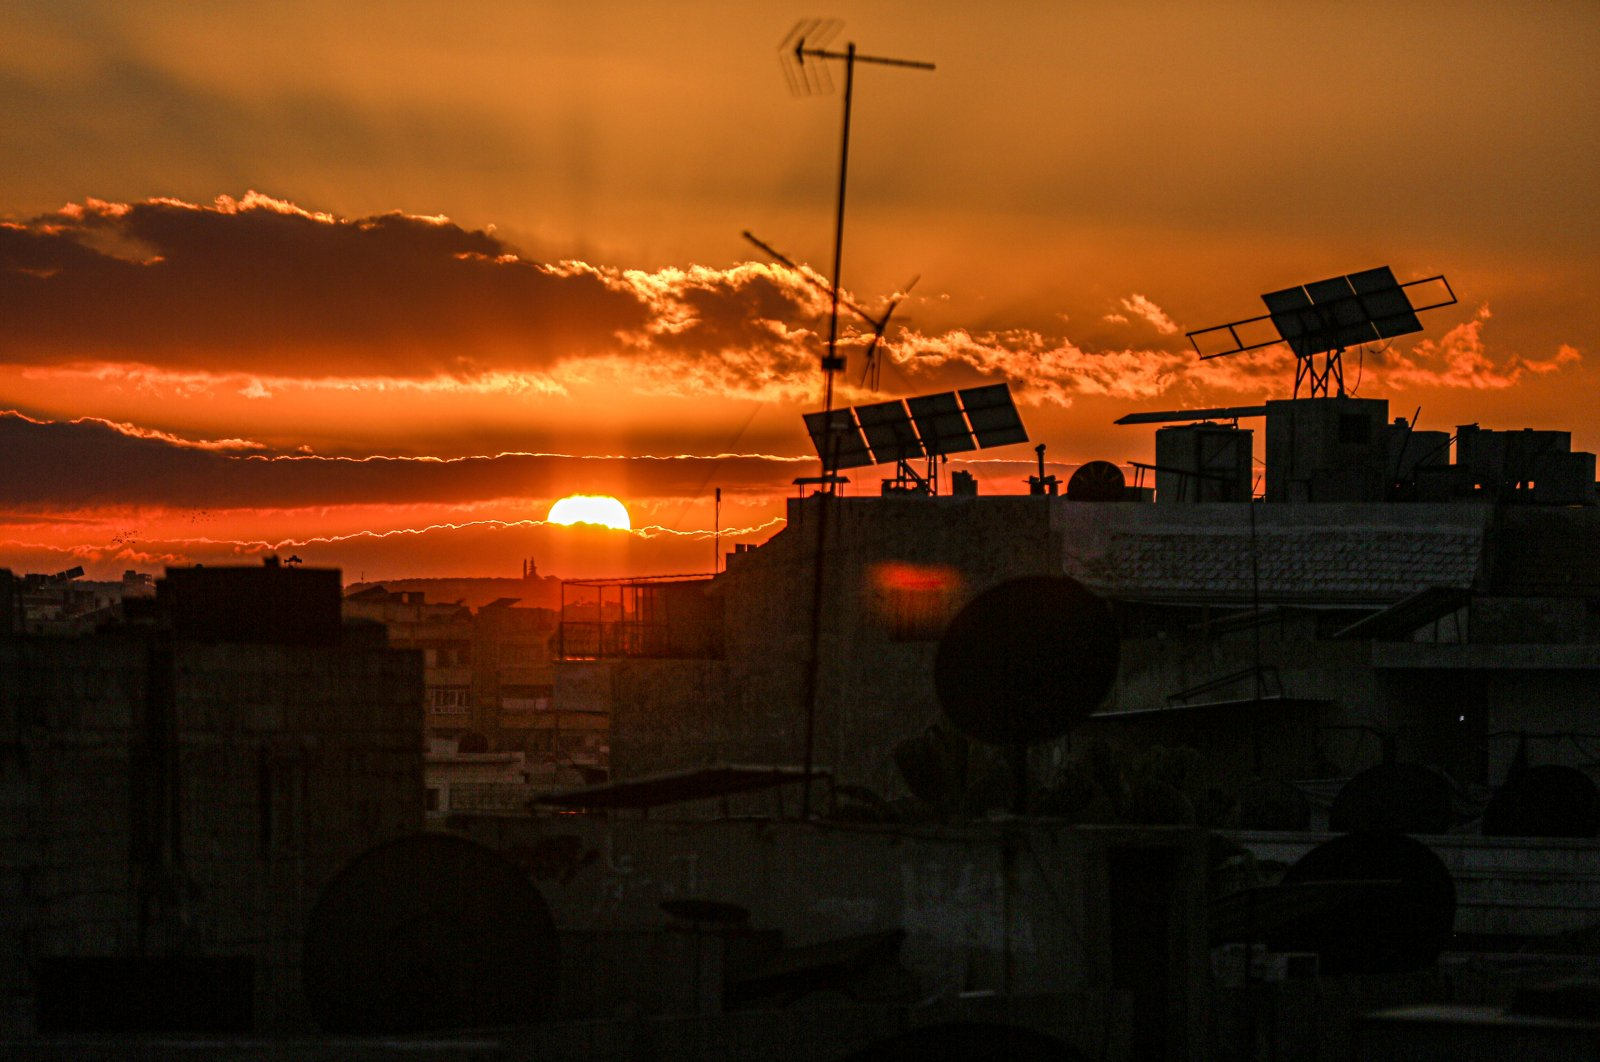 A sunset seen over the Idlib province, northern Syria, Feb. 15, 2021. (Photo by Getty Images)